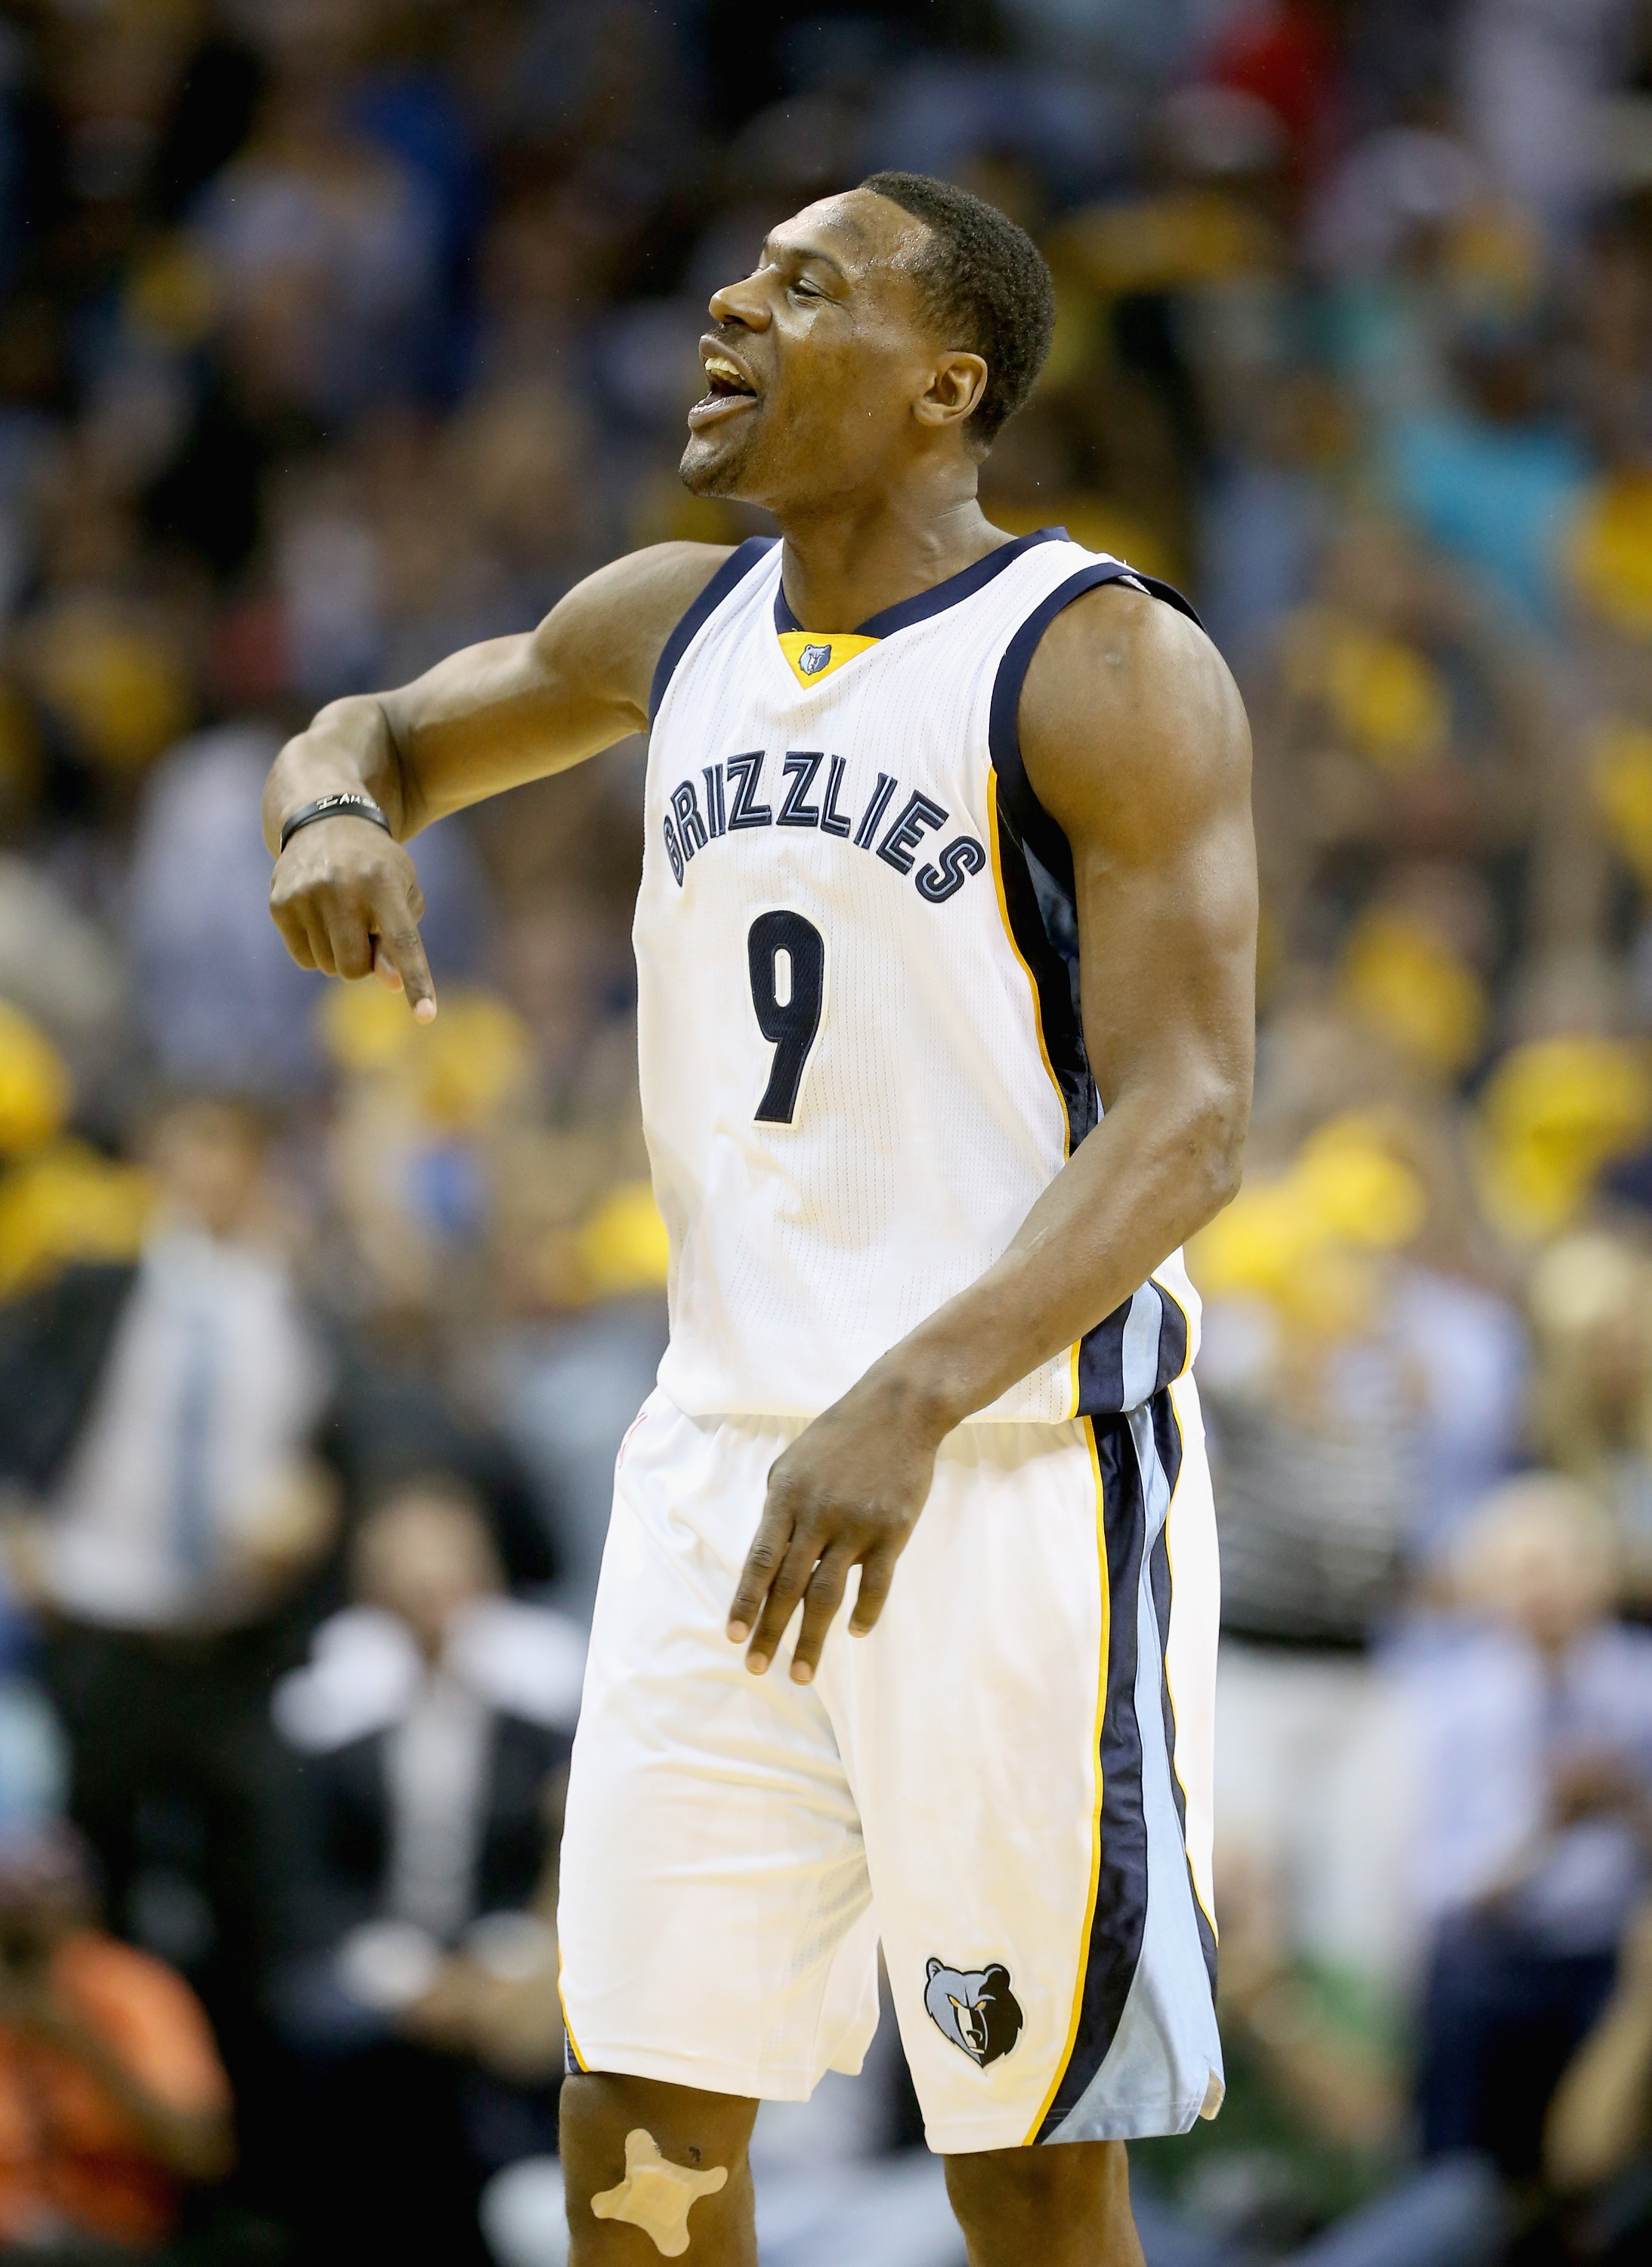 MEMPHIS, TN - MAY 09: Tony Allen #9 of the Memphis Grizzlies celebrates after making a basket against the Golden State Warriors during Game three of the Western Conference Semifinals of the 2015 NBA Playoffs at FedExForum on May 9, 2015 in Memphis, Tennessee. NOTE TO USER: User expressly acknowledges and agrees that, by downloading and or using this photograph, User is consenting to the terms and conditions of the Getty Images License Agreement (Photo by Andy Lyons/Getty Images)